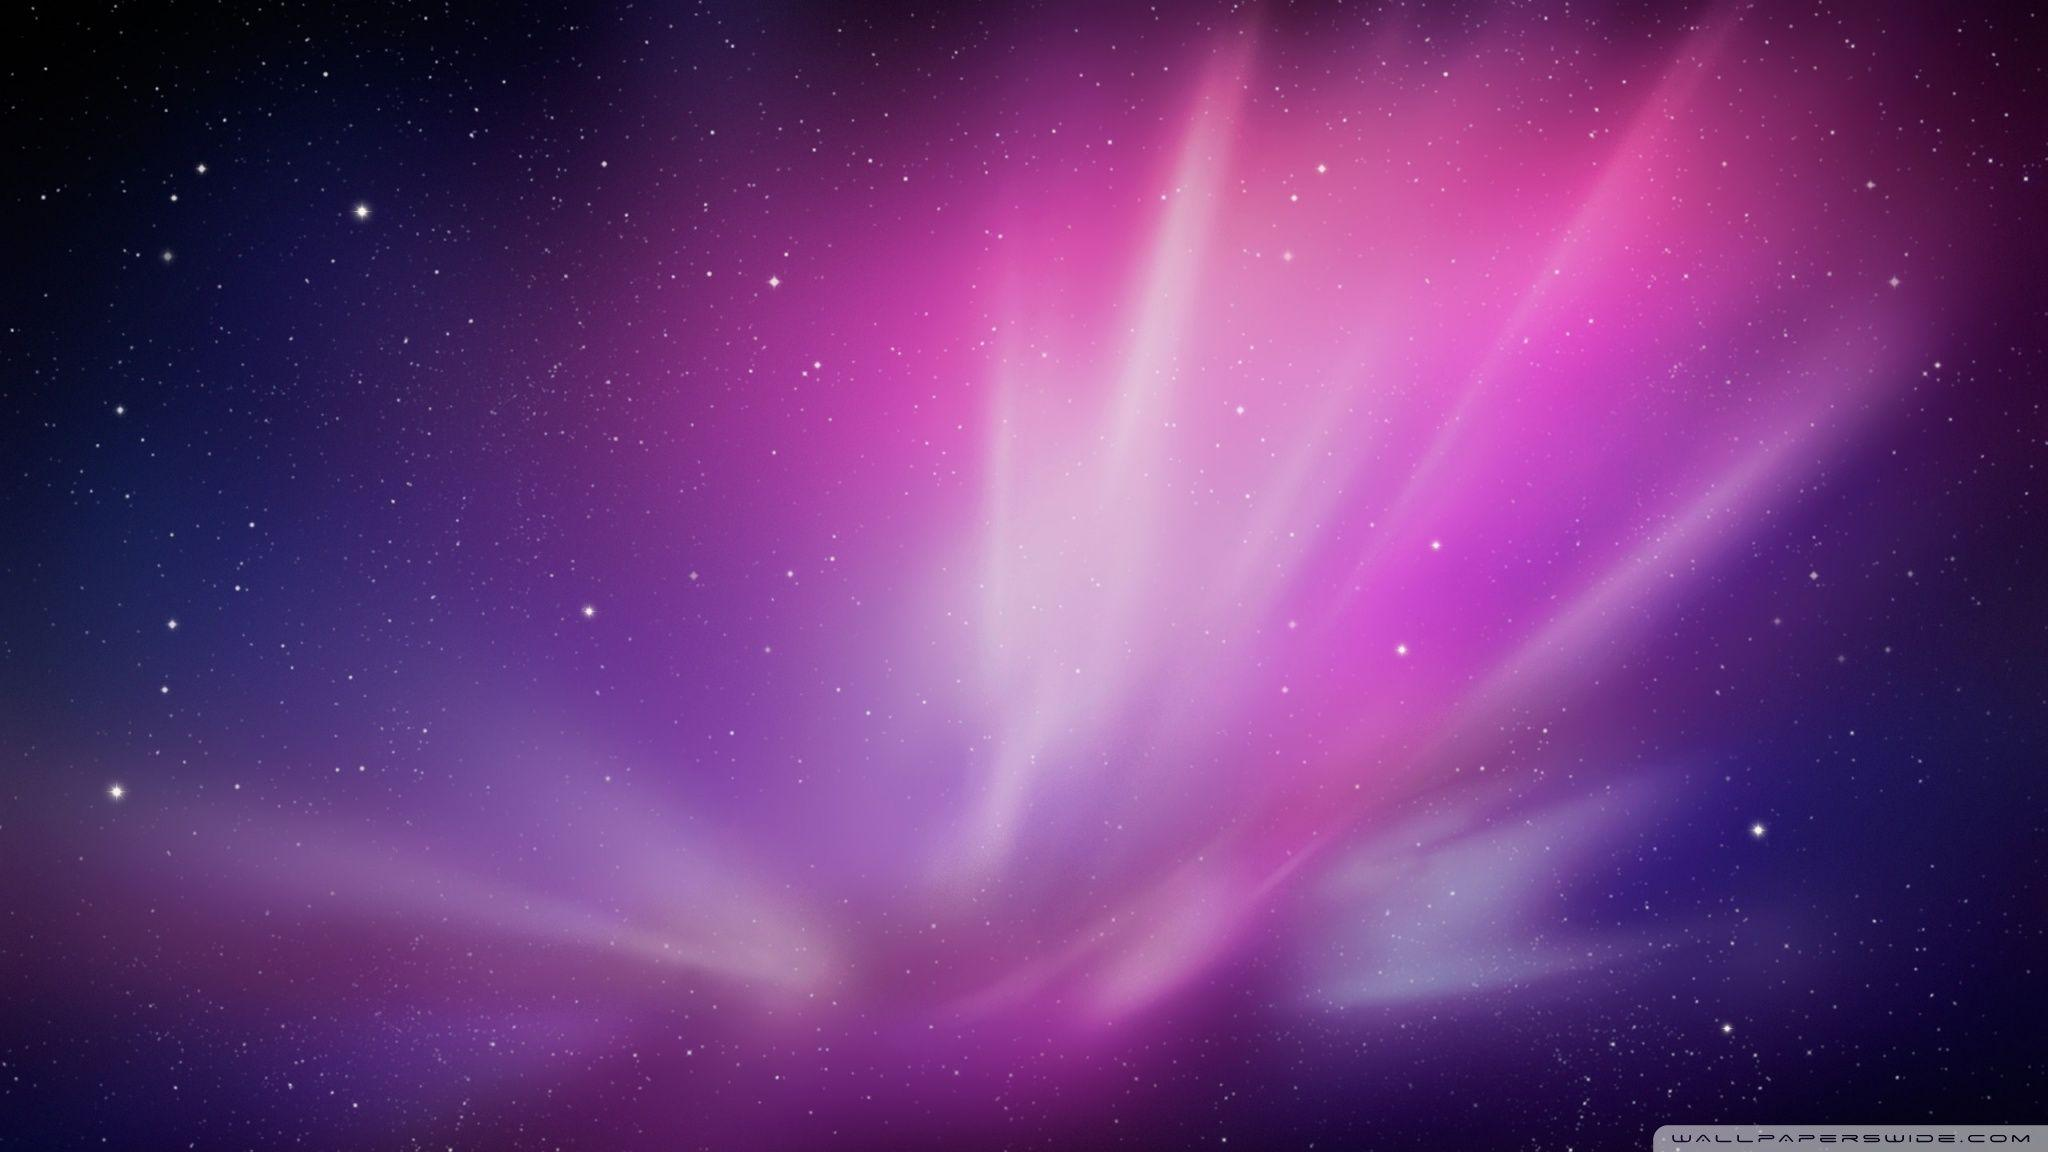 HD s Mac wallpapers